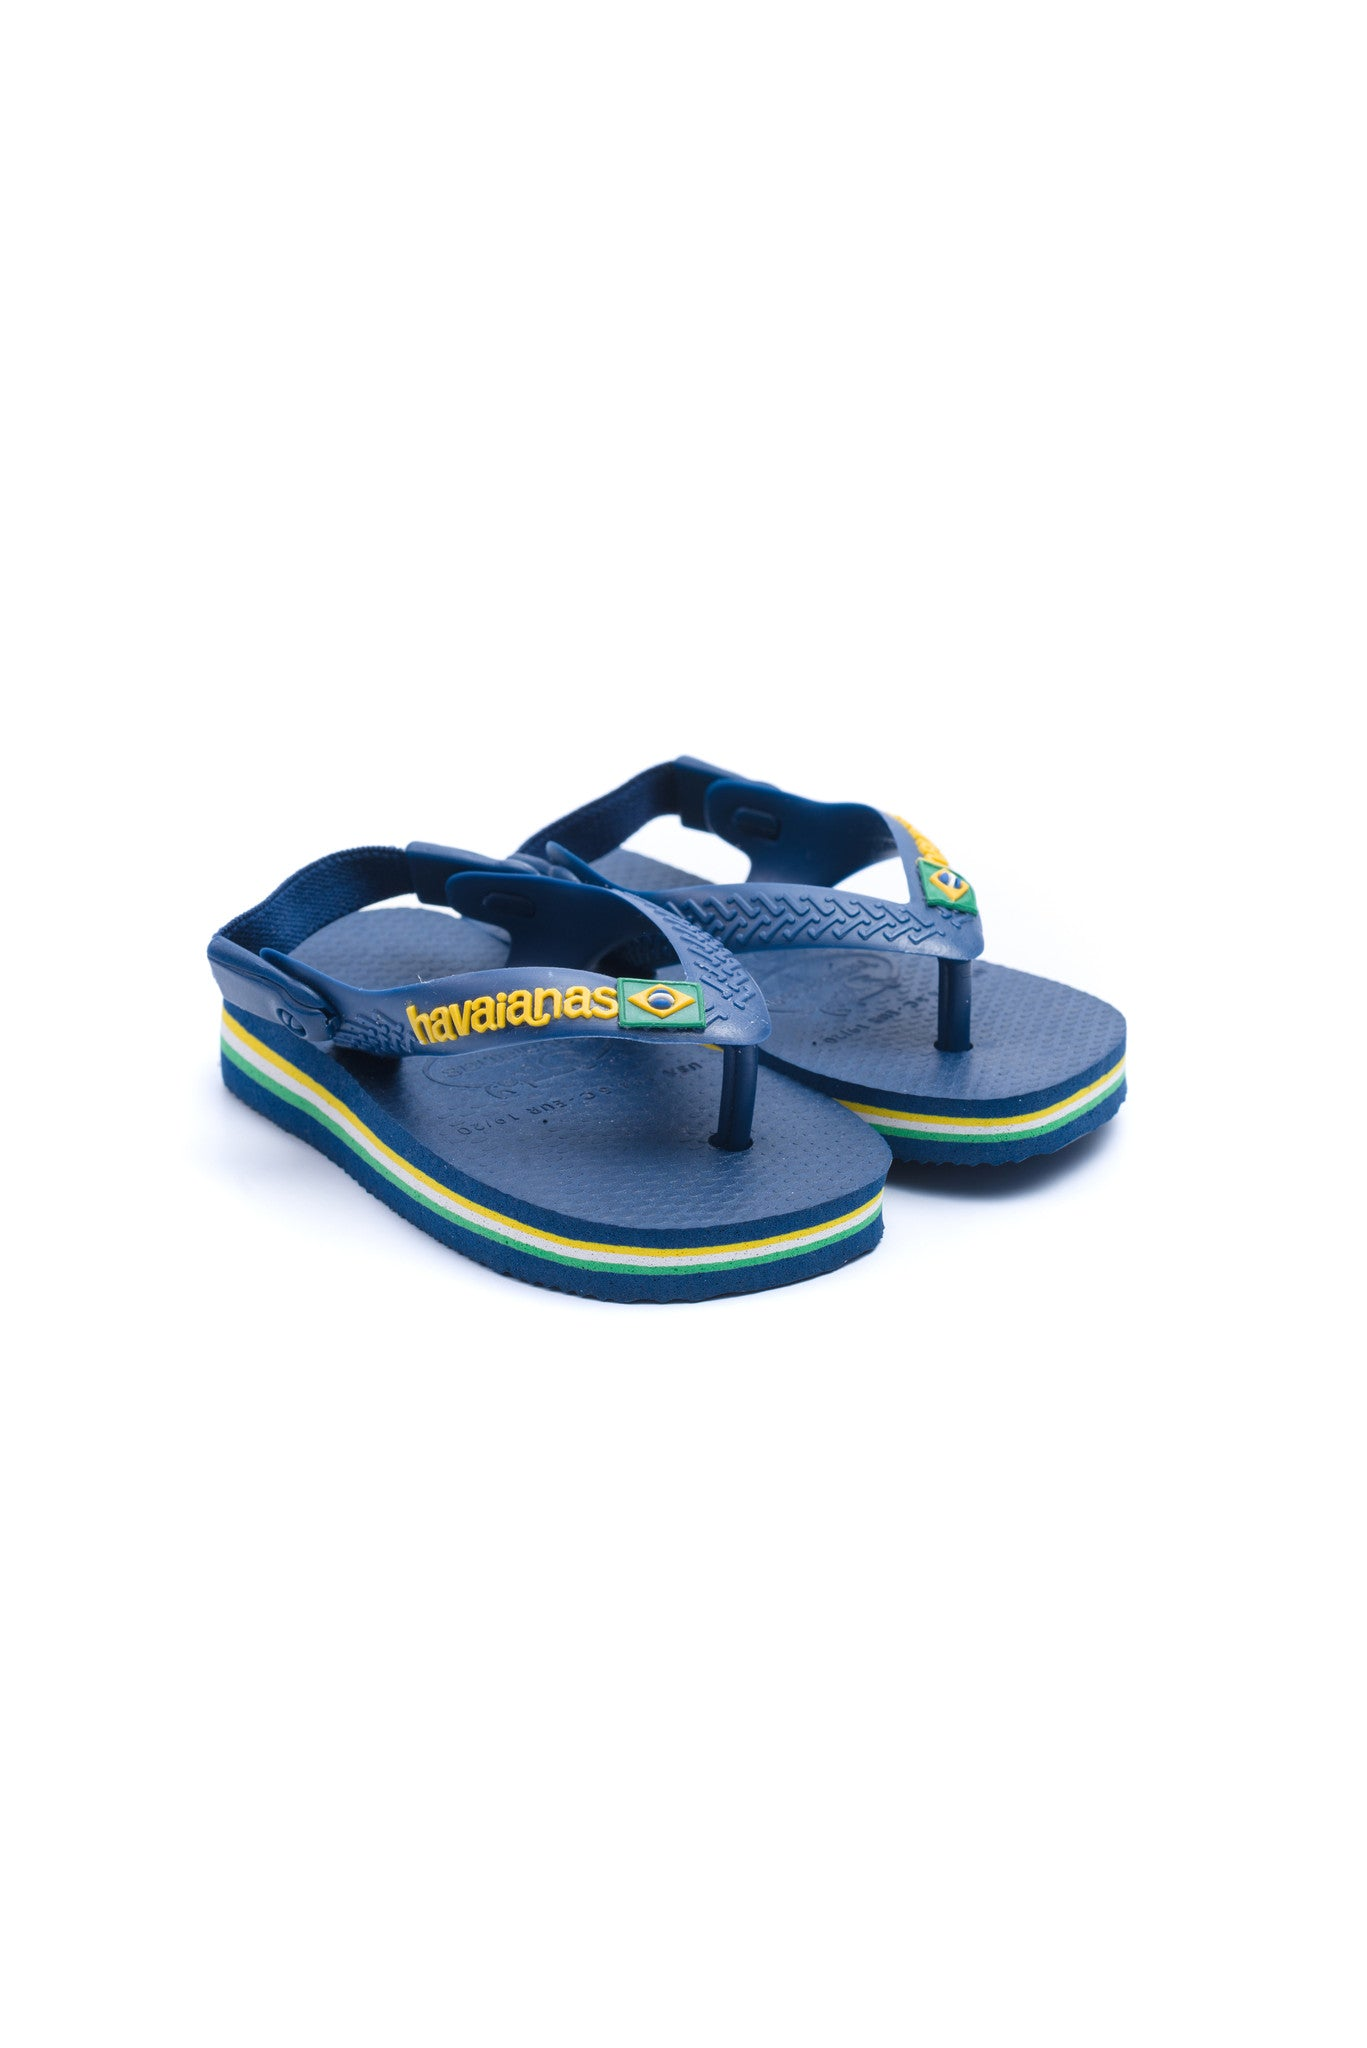 Flip Flops 3-6M, Havaianas at Retykle - Online Baby & Kids Clothing Up to 90% Off